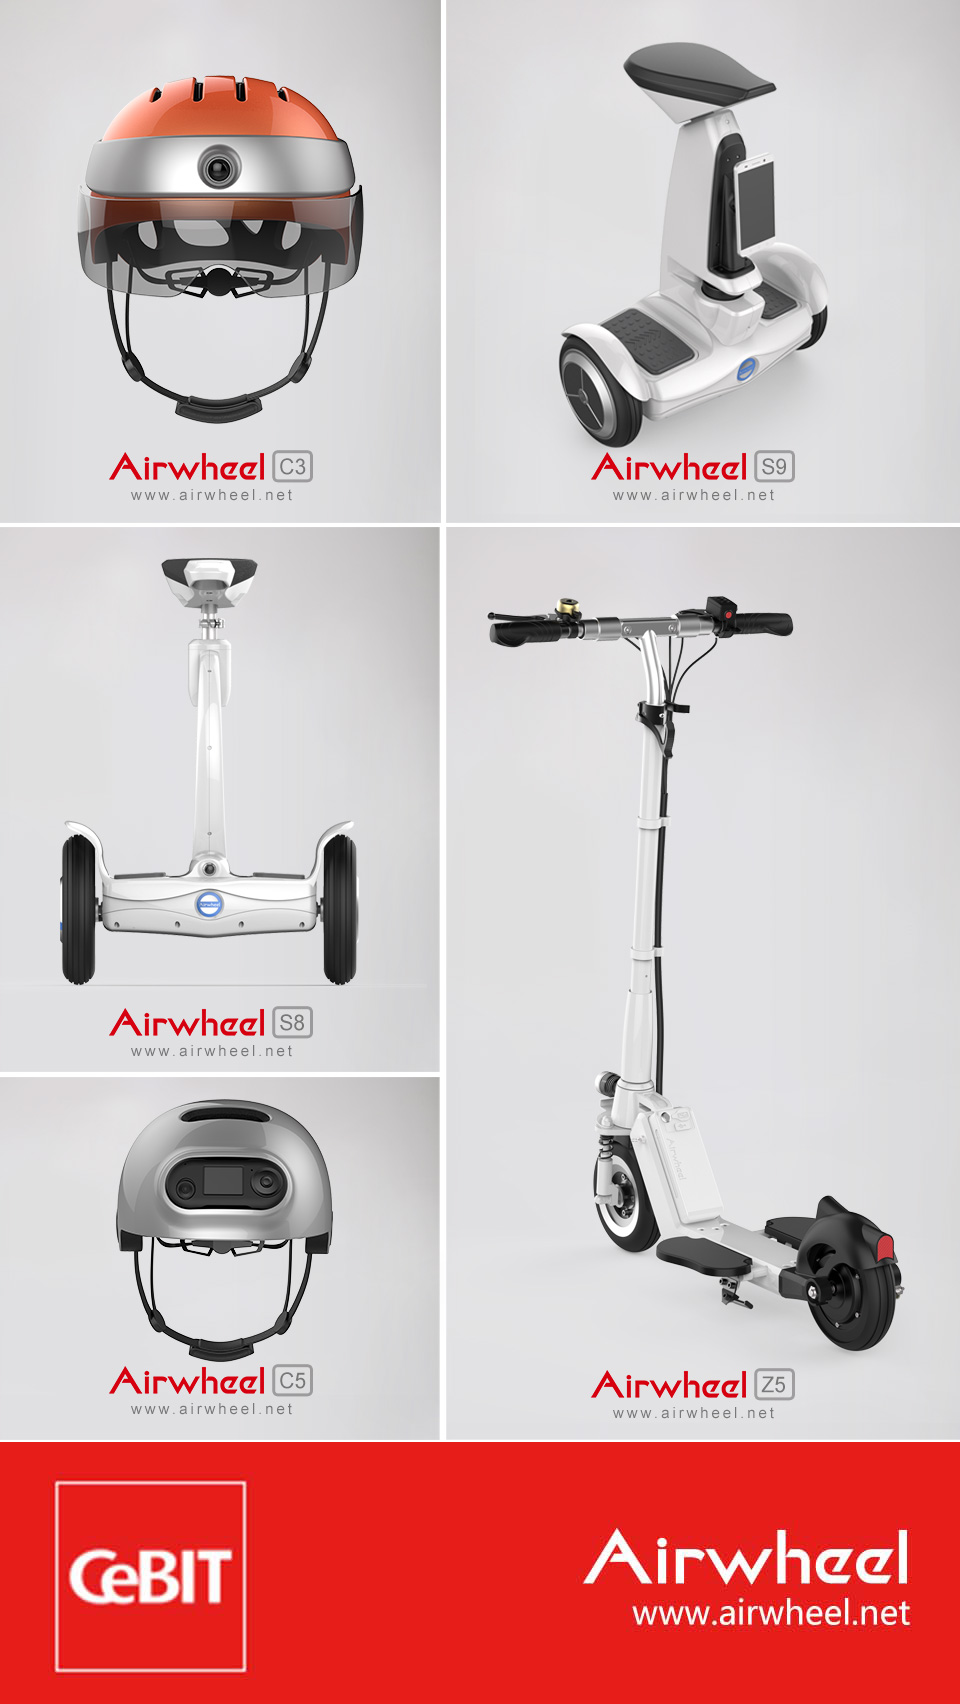 electric scooter for adults airwheel z5